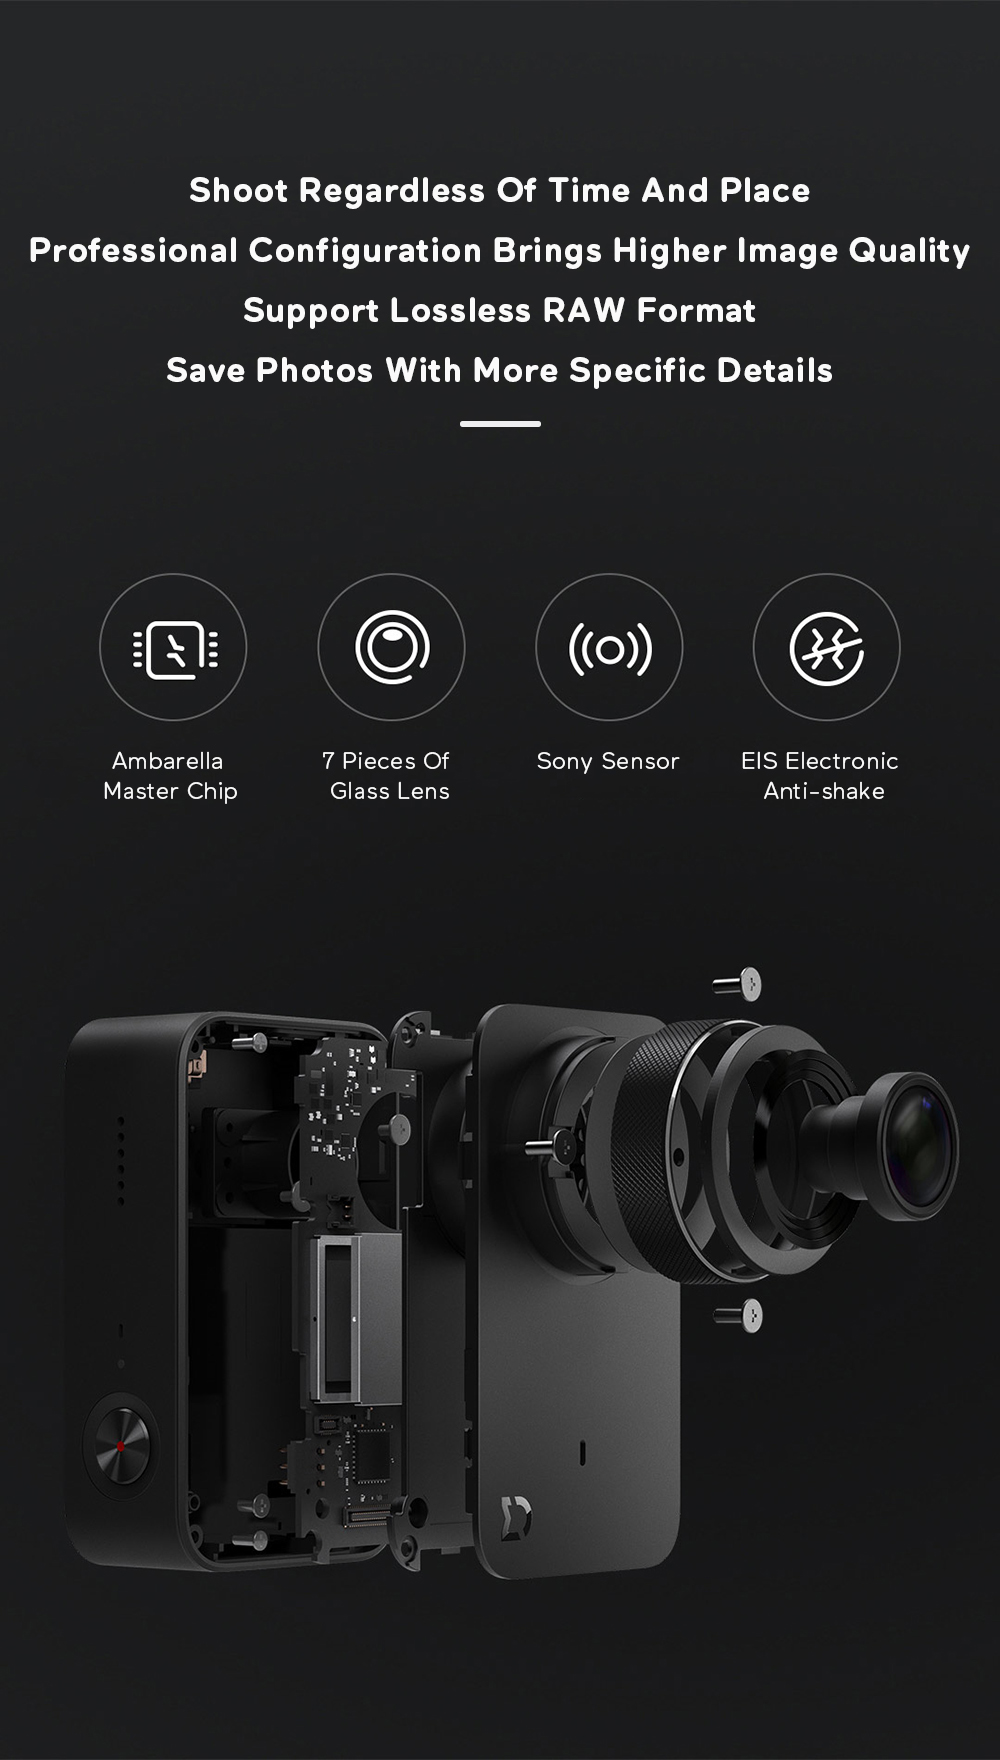 Xiaomi Mijia 4K Ambarella A12S75 Sony IMX317 2,4 - crna - image Xiaomi-Camera-Mijia-4K-Action-Camera-20170824175000574 on https://smartmall.hr